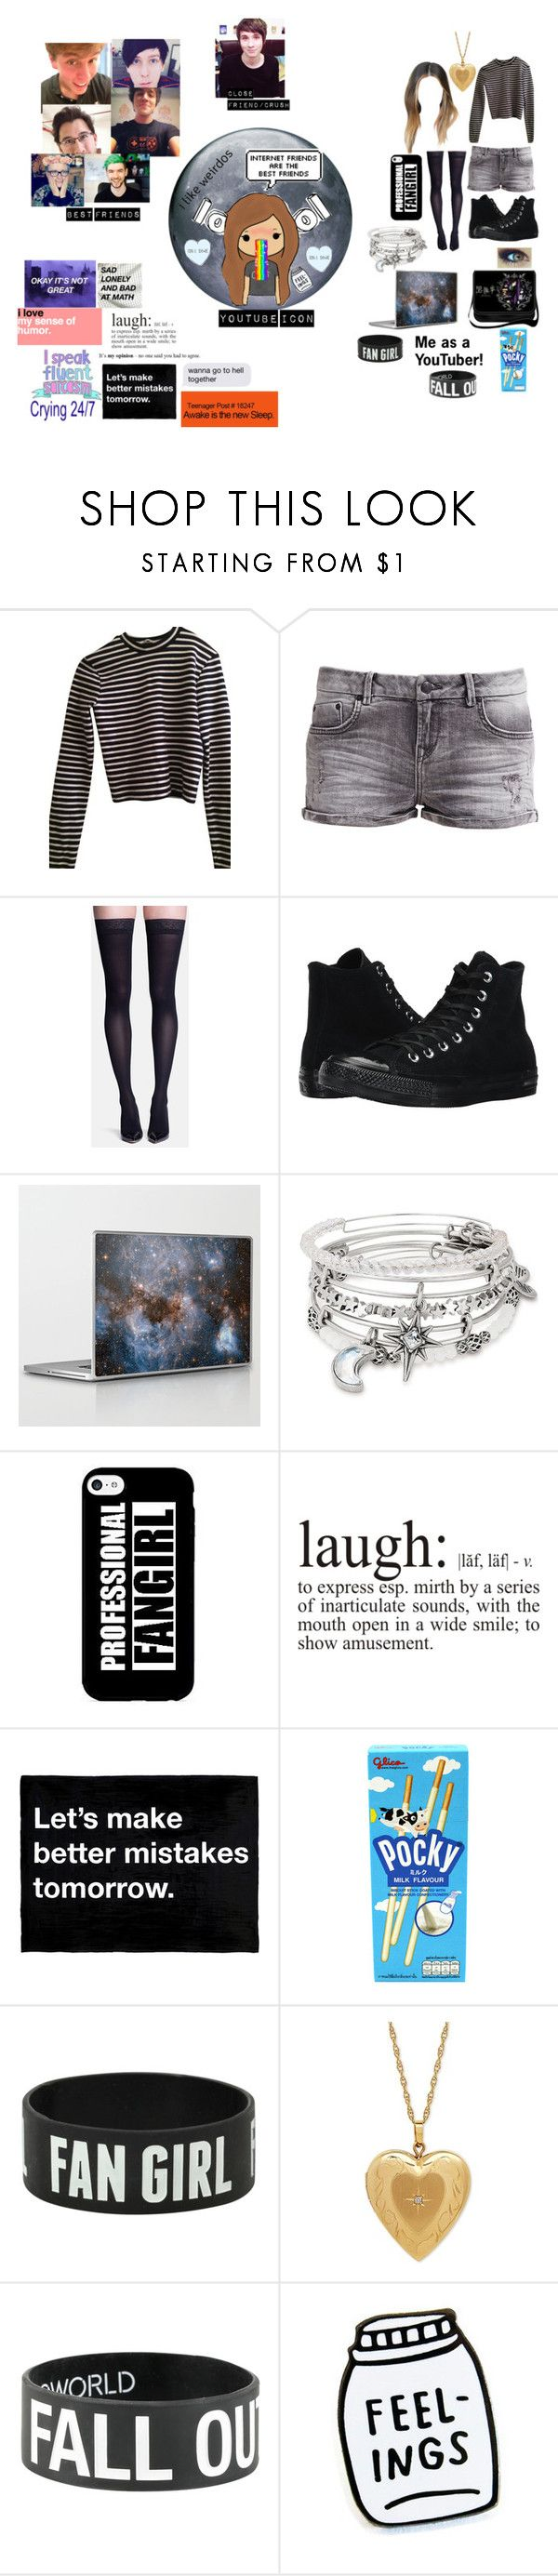 """""""Me as a YouTuber!"""" by i-love-cake3 ❤ liked on Polyvore featuring T By Alexander Wang, LTB, Sigvaris, Converse, Alex and Ani, GET LOST, WALL, Sanders, Hot Topic and Oakley"""